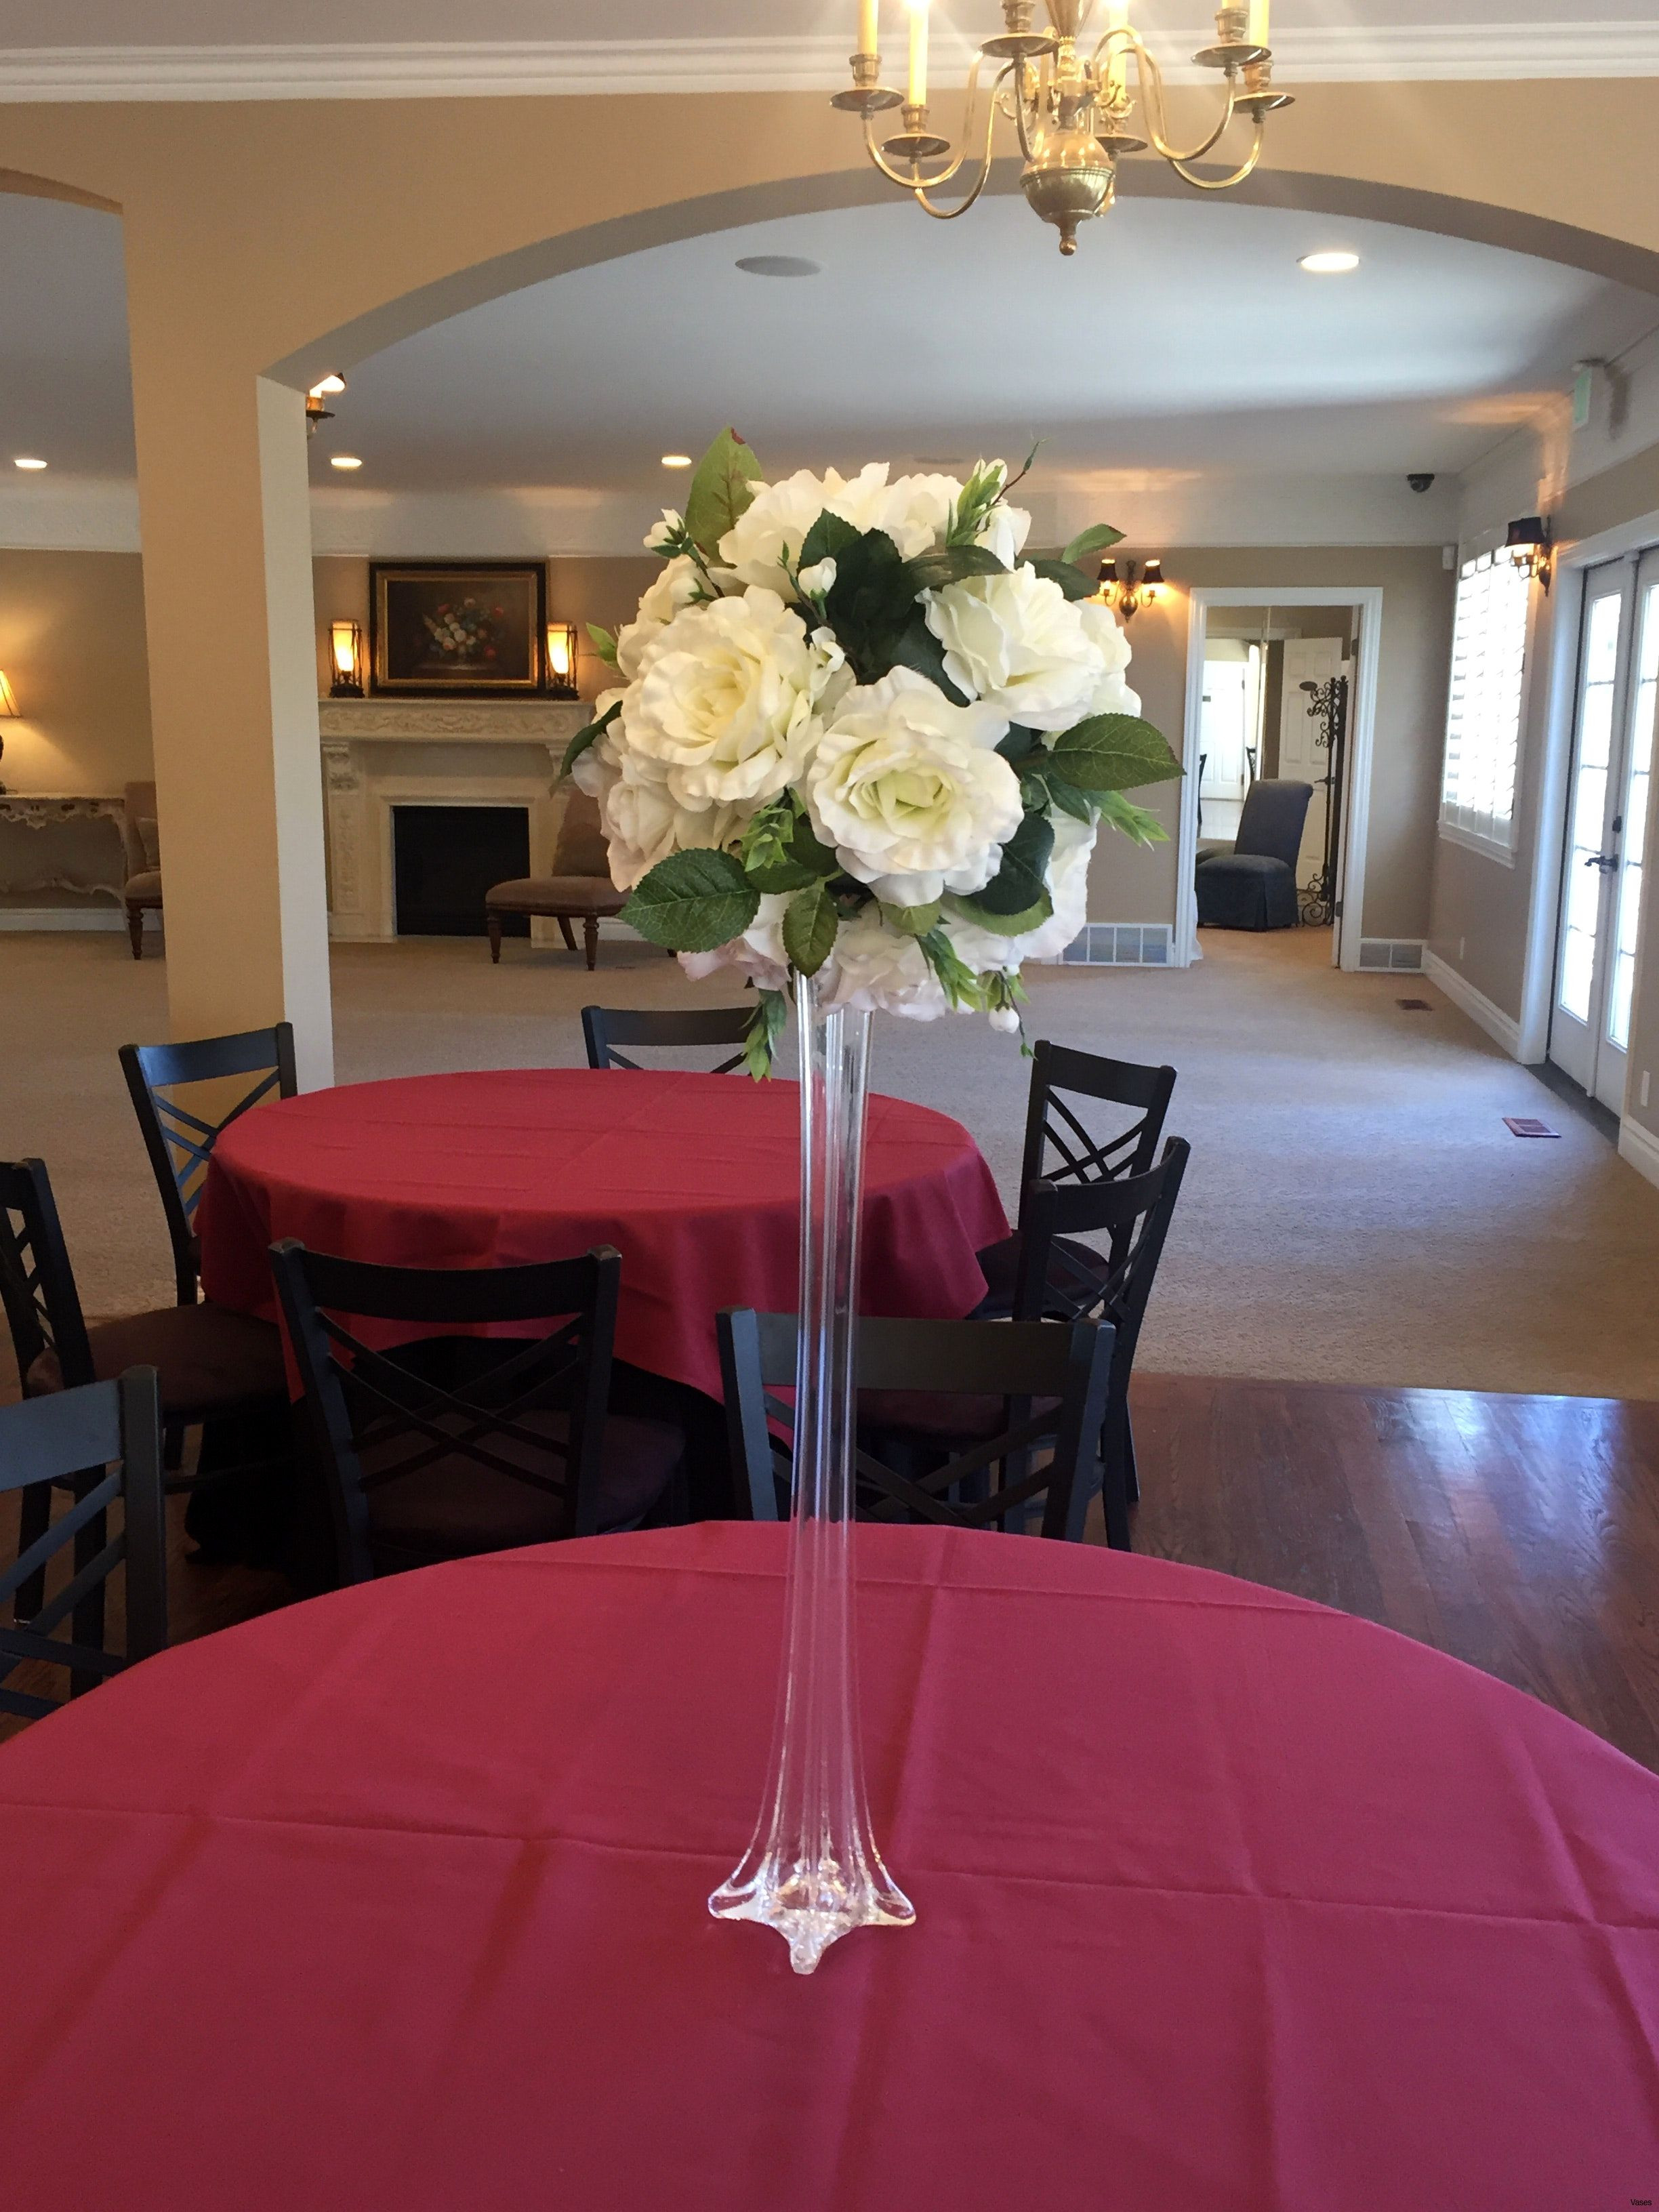 30 inch eiffel tower vases of 24 tall vases for sale the weekly world pertaining to lovely wedding decoration rental wedding decoration rental awesome eiffel tower vases centerpieces vtw01 24 inch clear whiteh whitei 0d